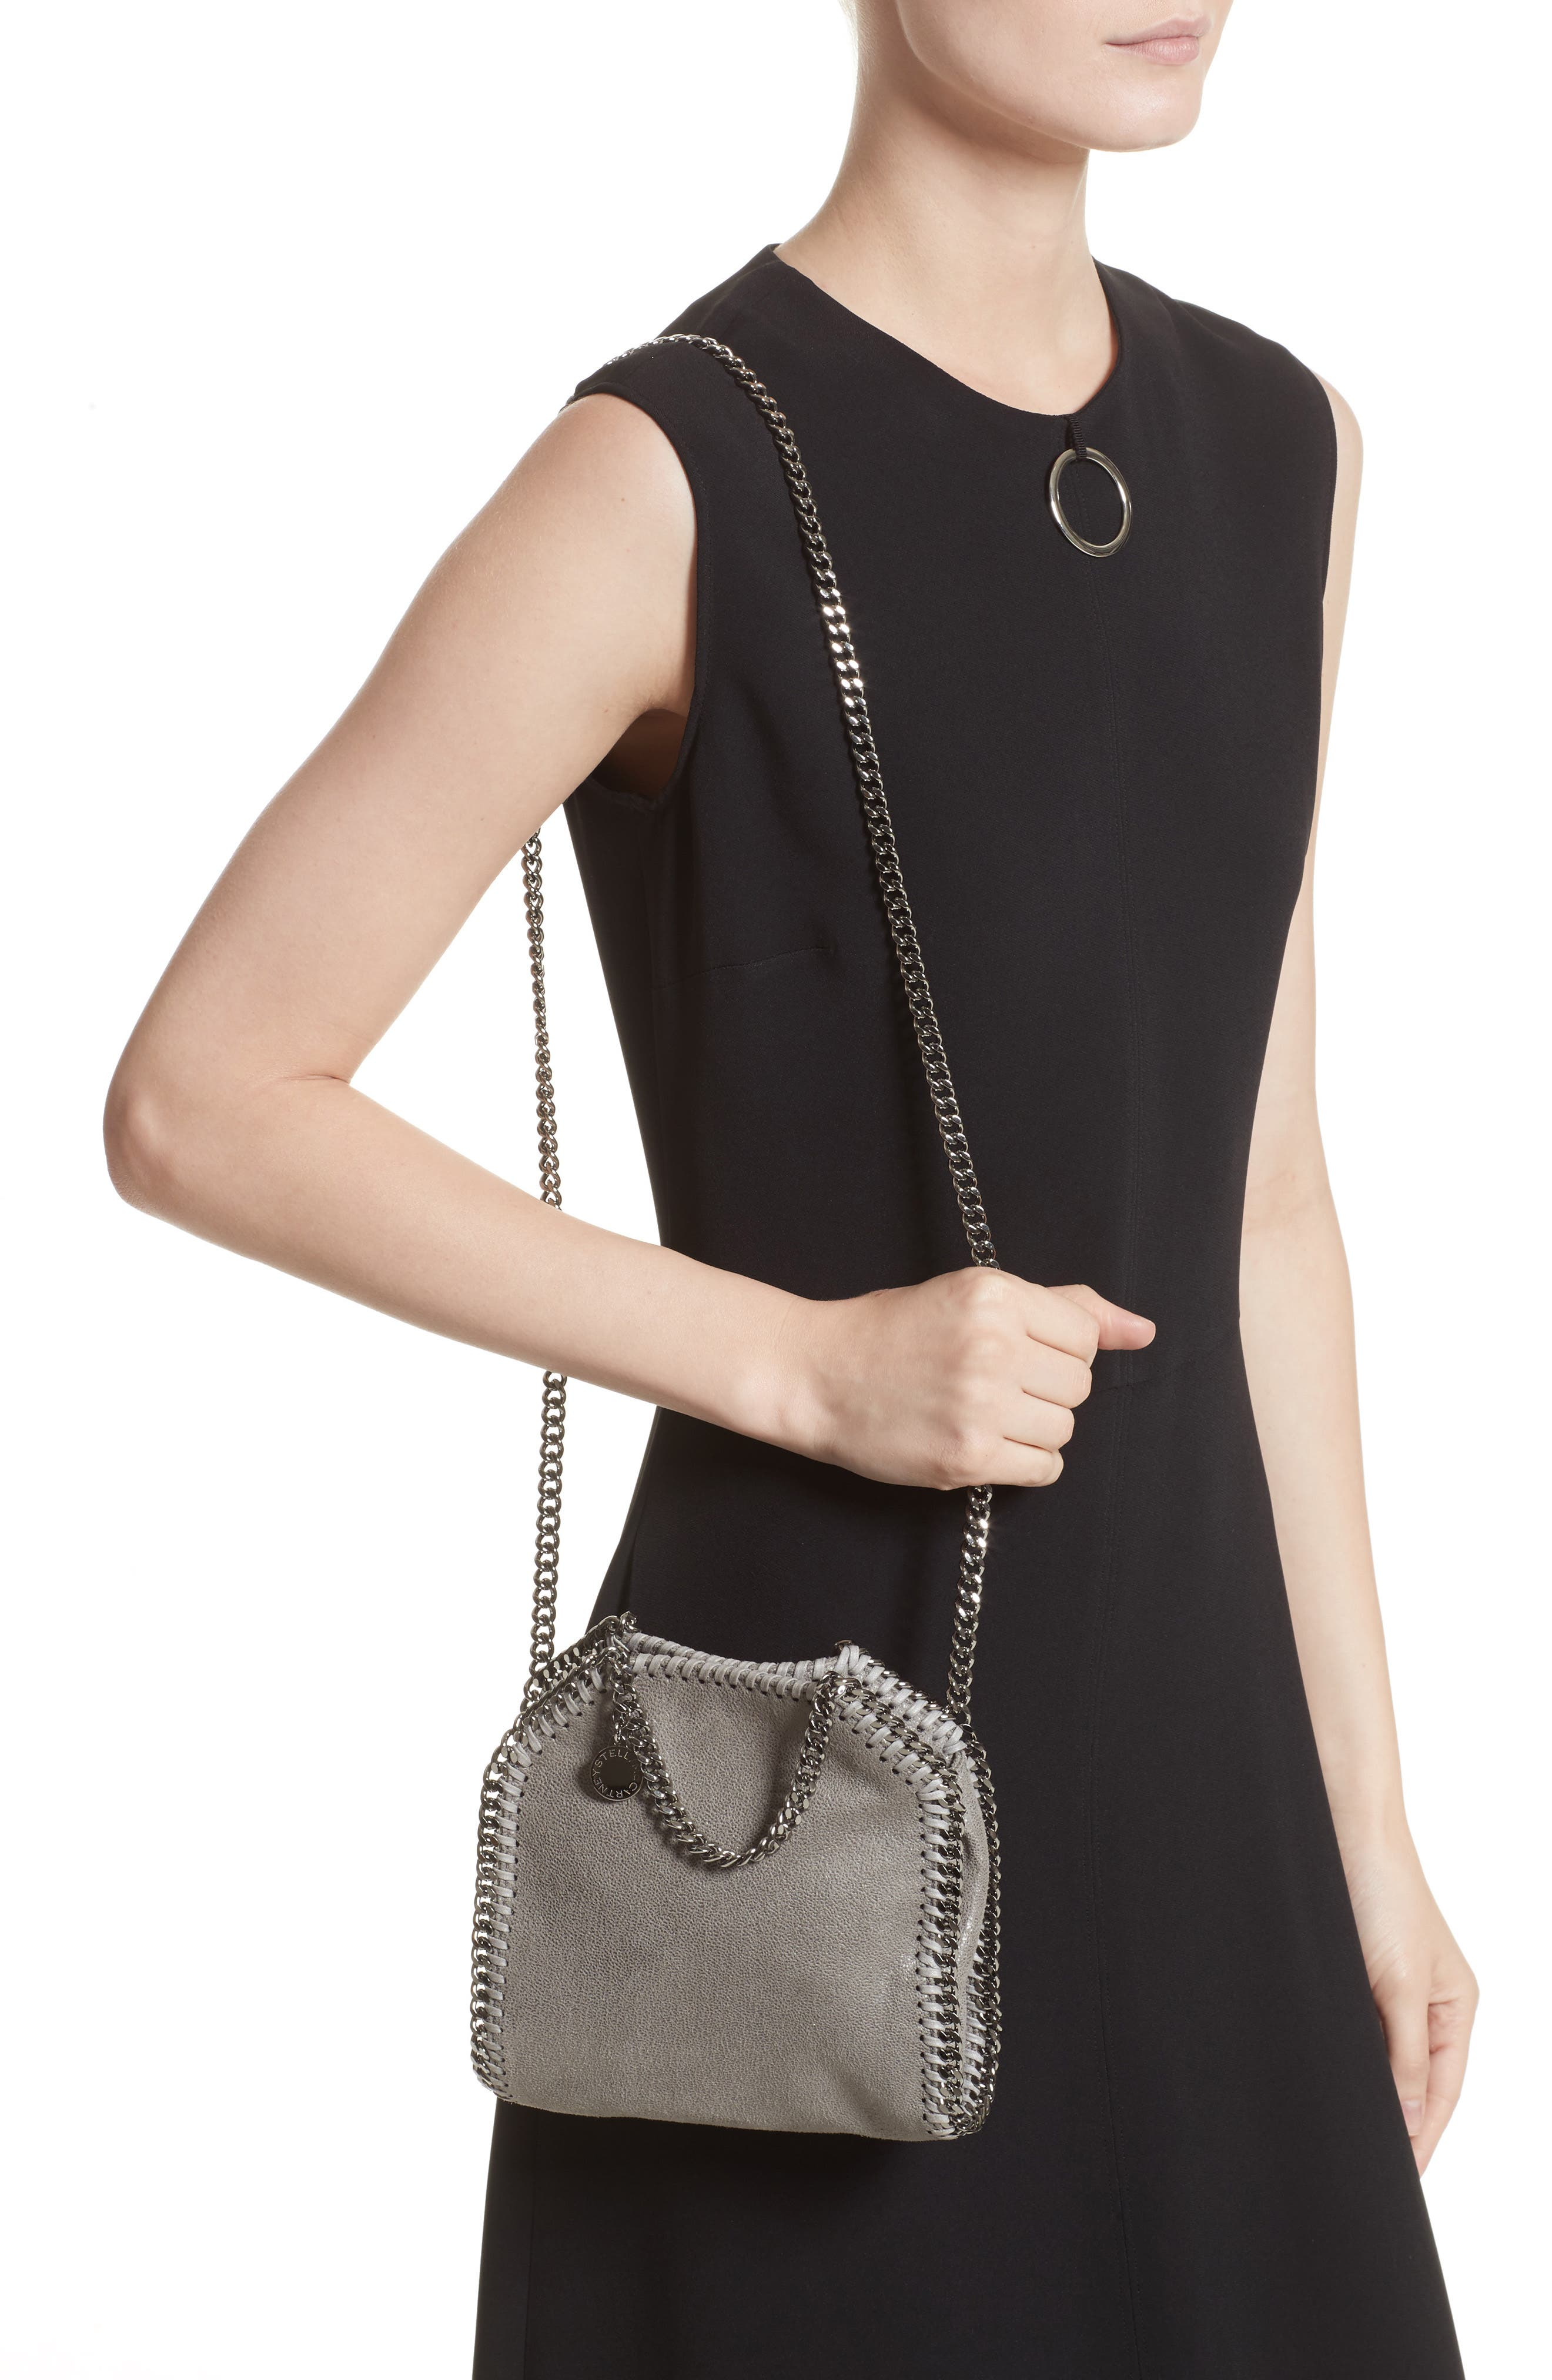 STELLA MCCARTNEY, 'Tiny Falabella' Faux Leather Crossbody Bag, Alternate thumbnail 2, color, 053